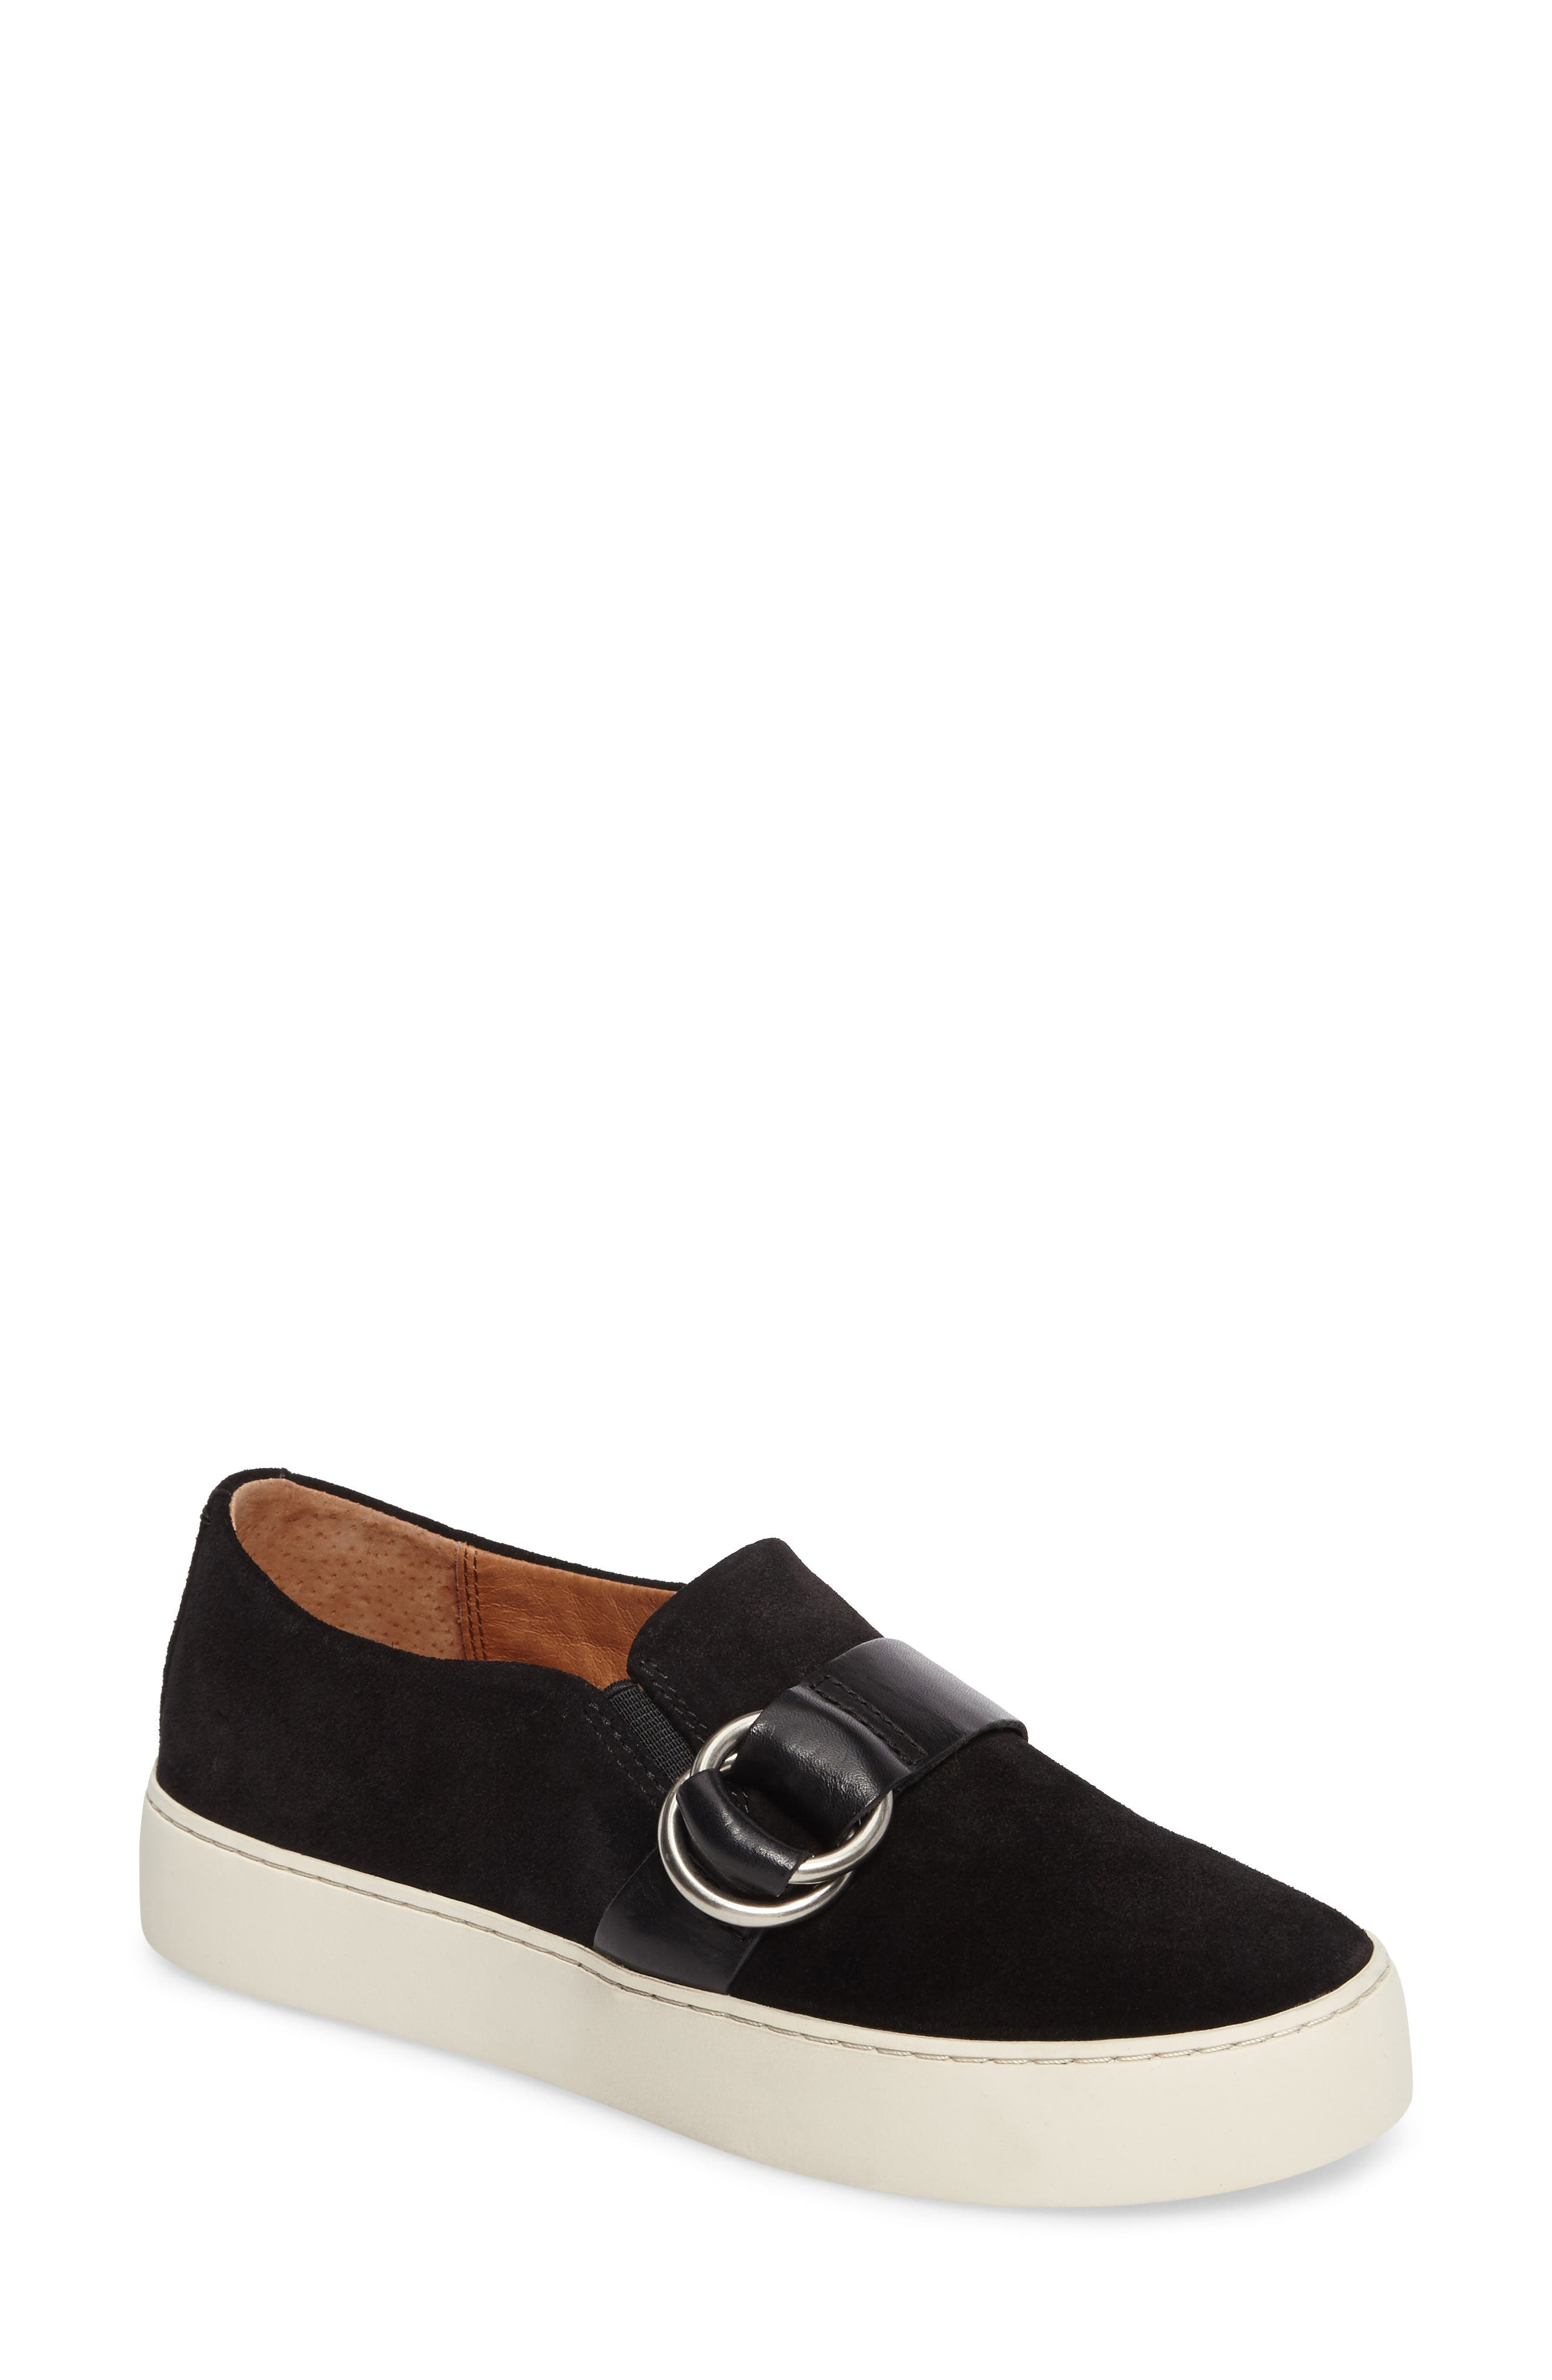 Lena Harness Slip-On Sneaker,                             Main thumbnail 1, color,                             001